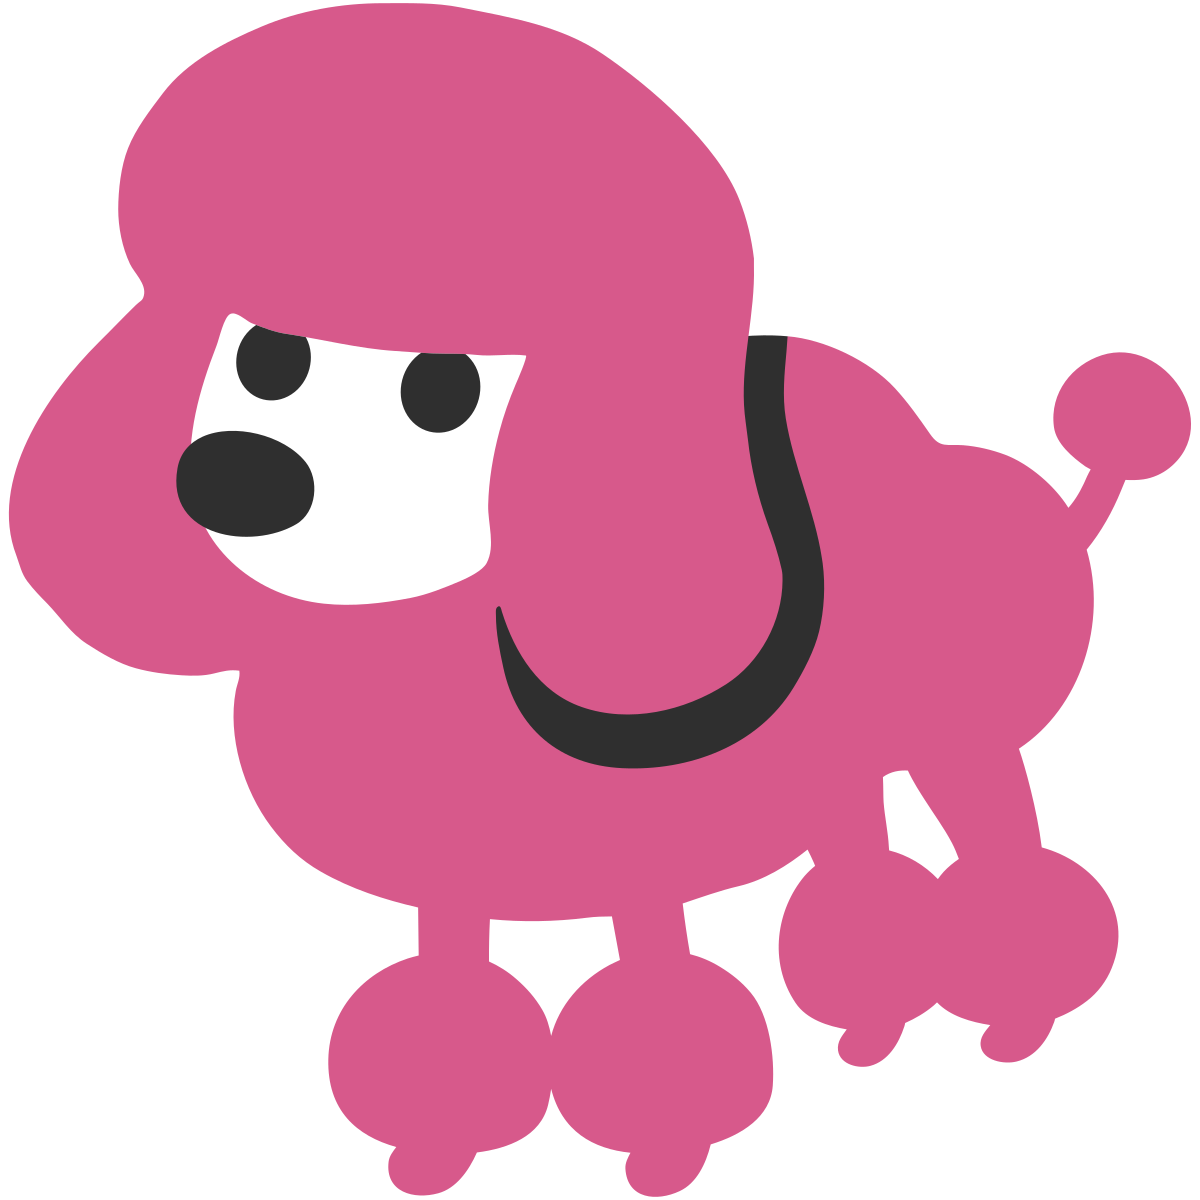 Poodle svg paper. Toy clipart at getdrawings